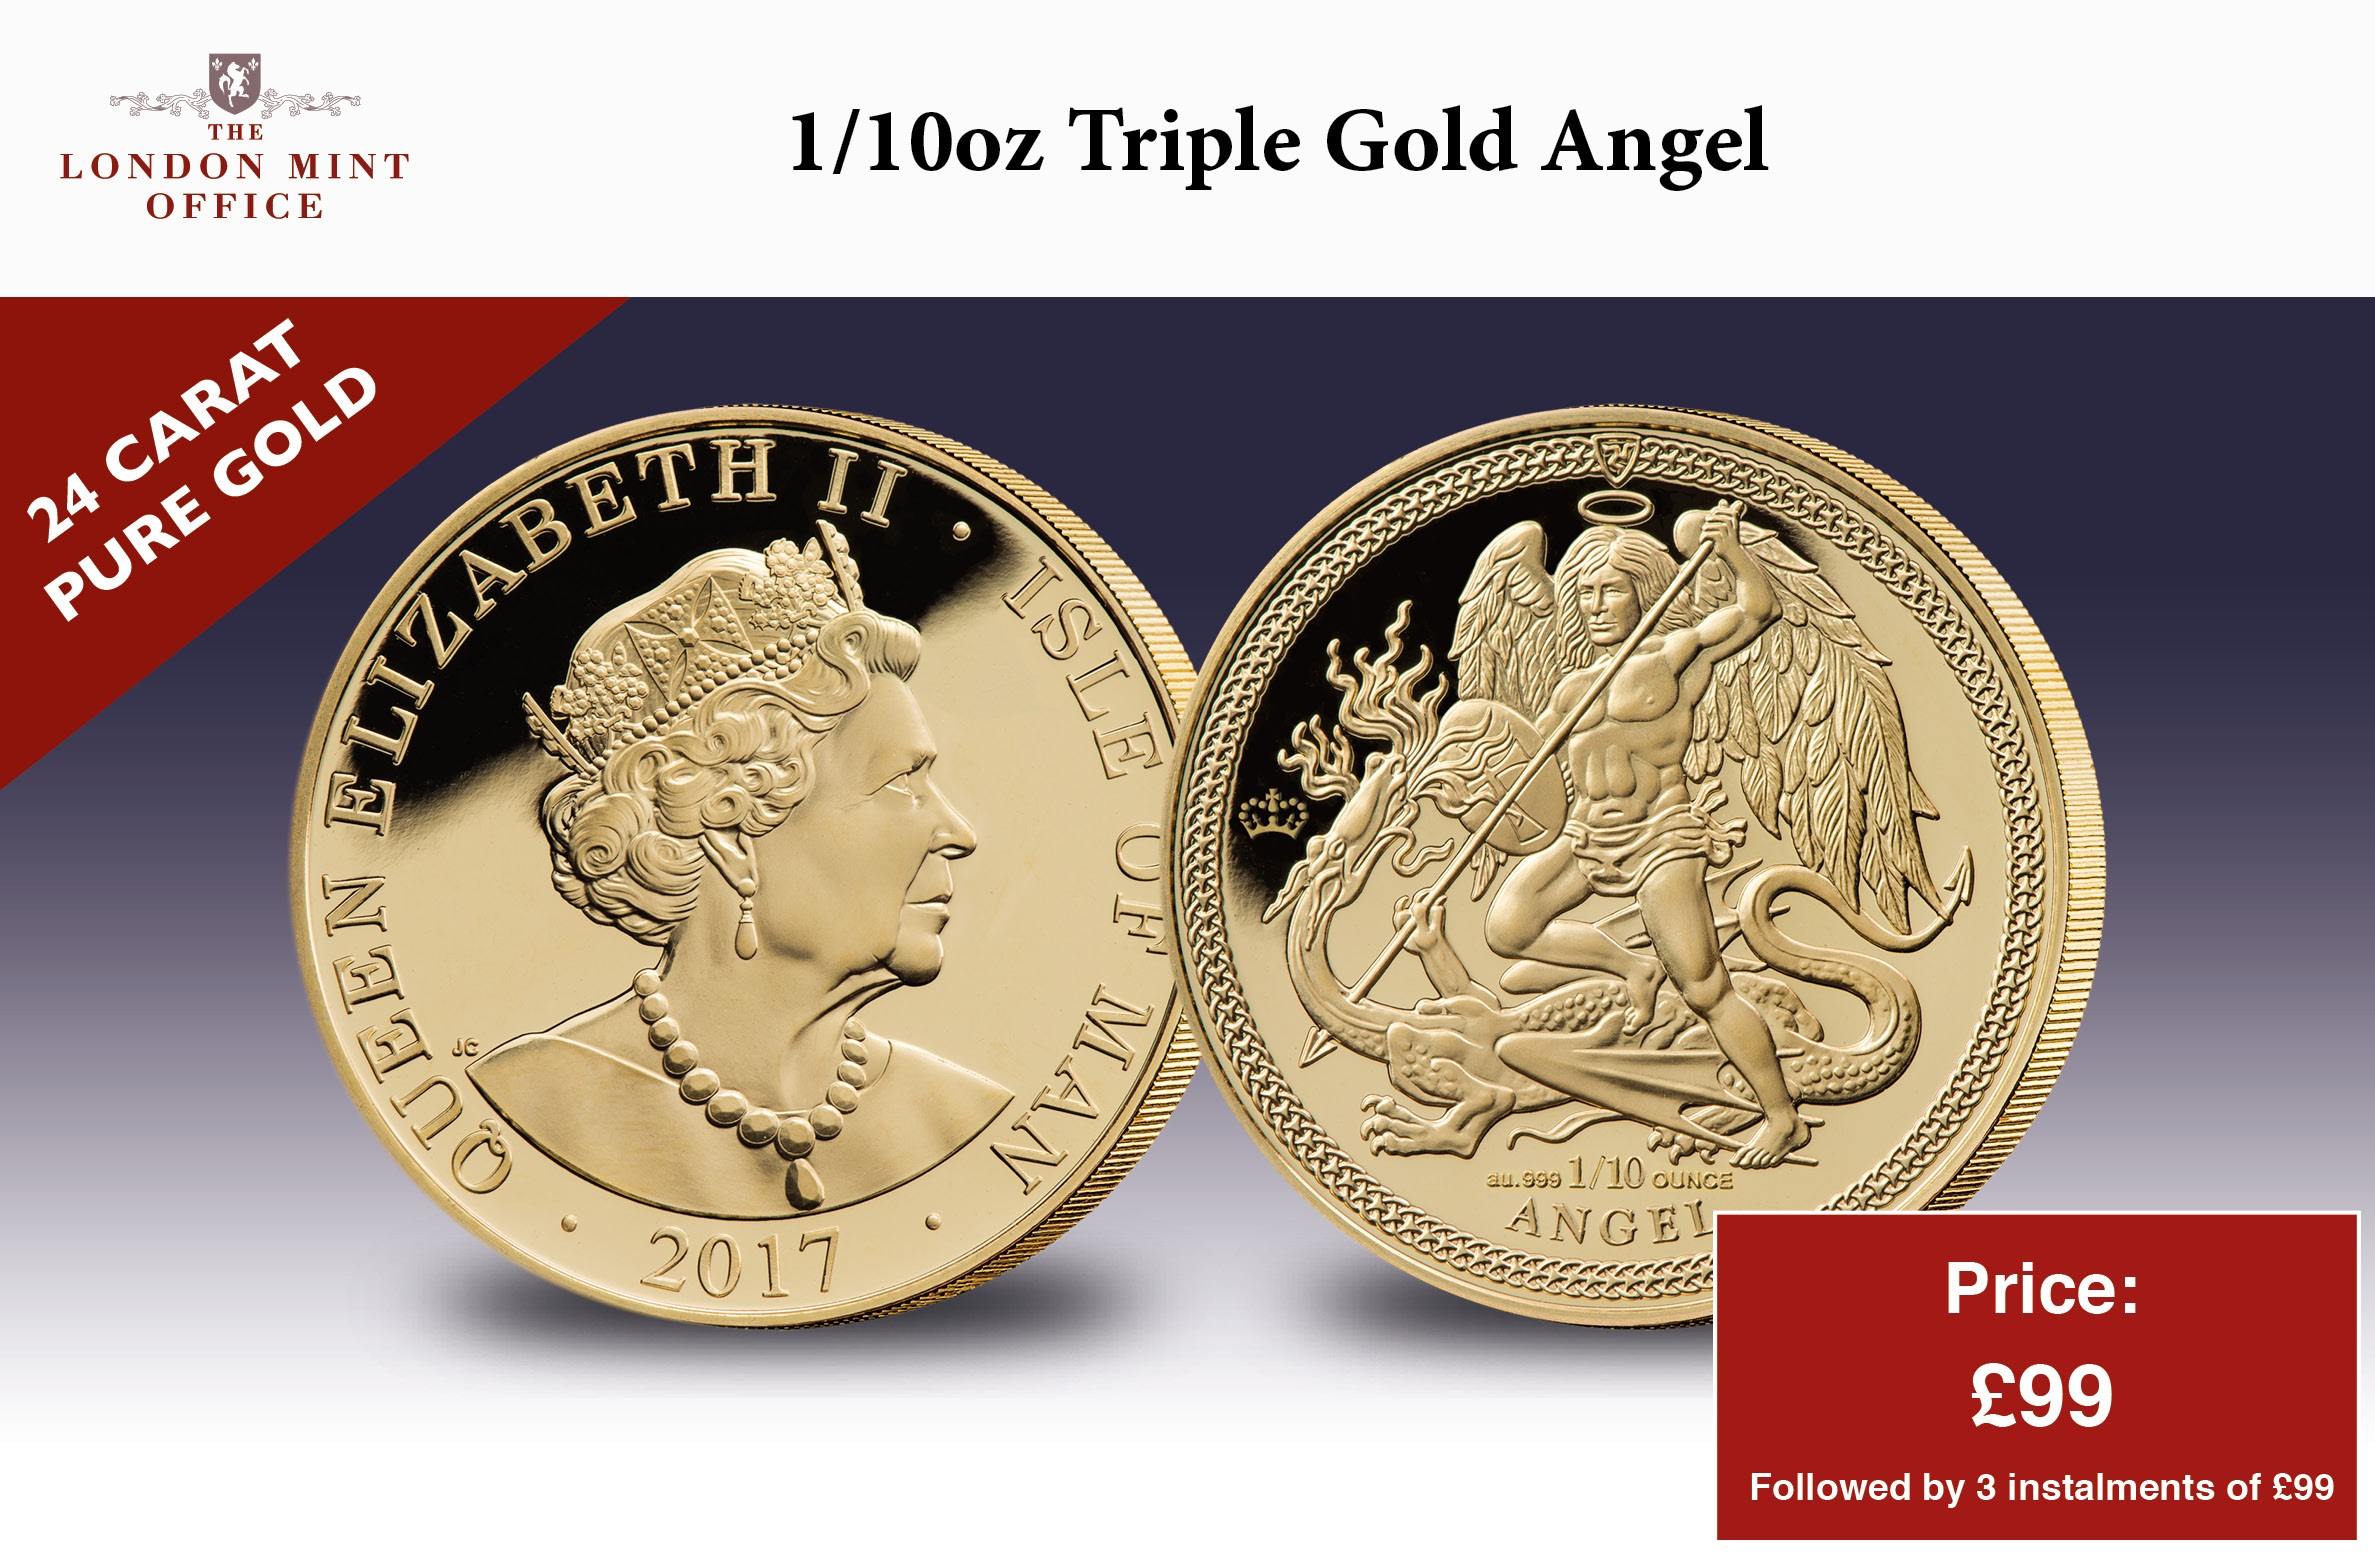 2017 Isle of Man 1/10oz Gold